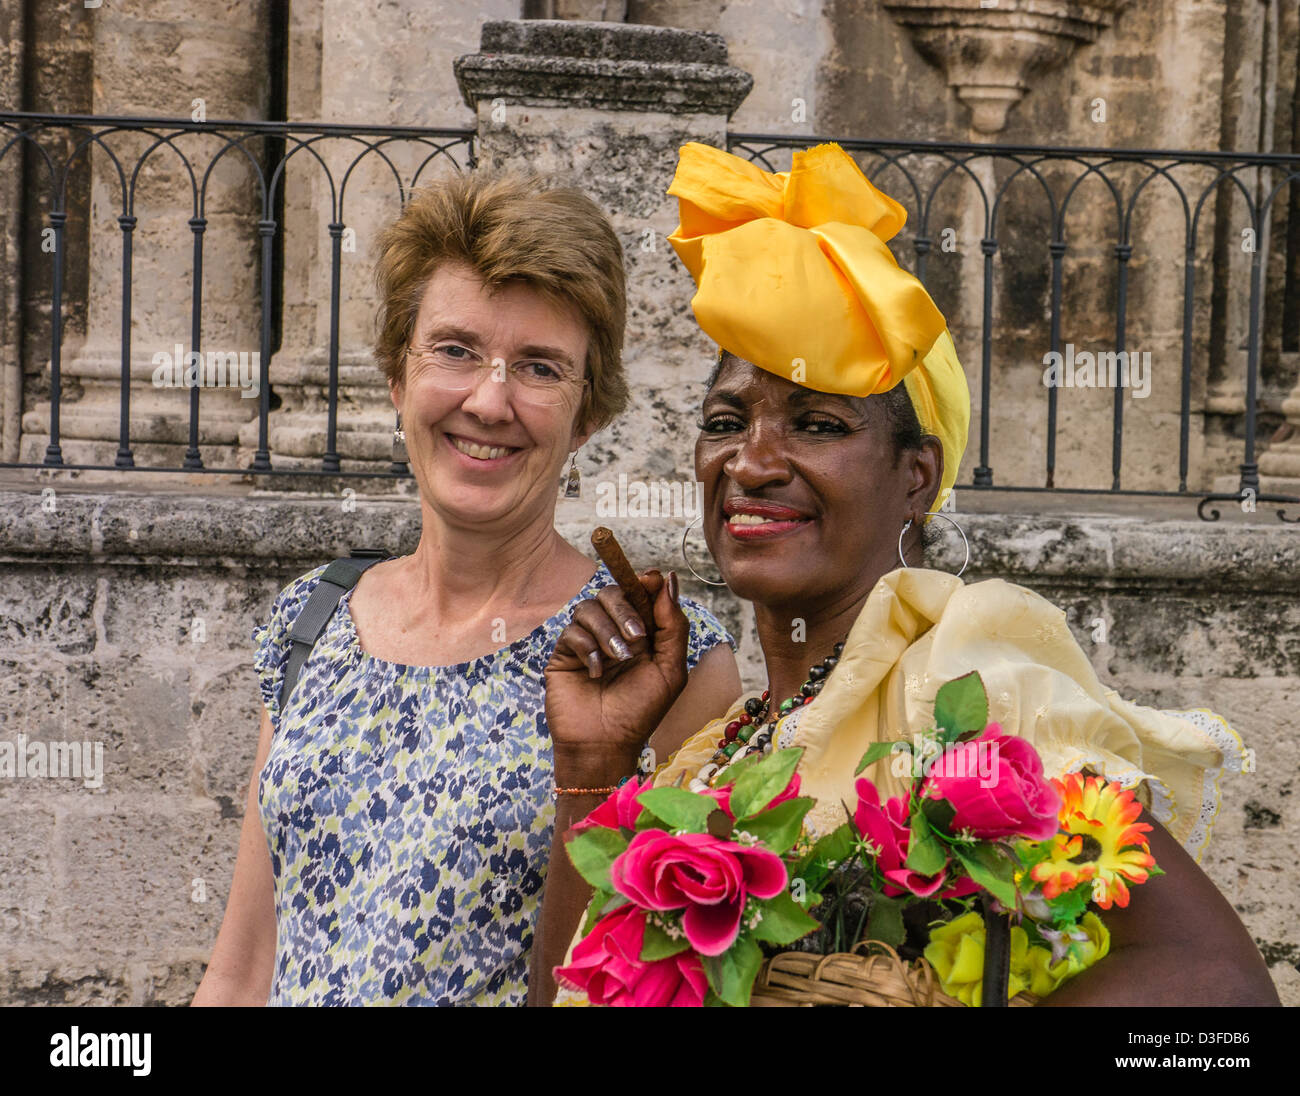 A Cuban cigar smoking dark skinned woman poses with a light skinned American tourist in Havana, Cuba. - Stock Image